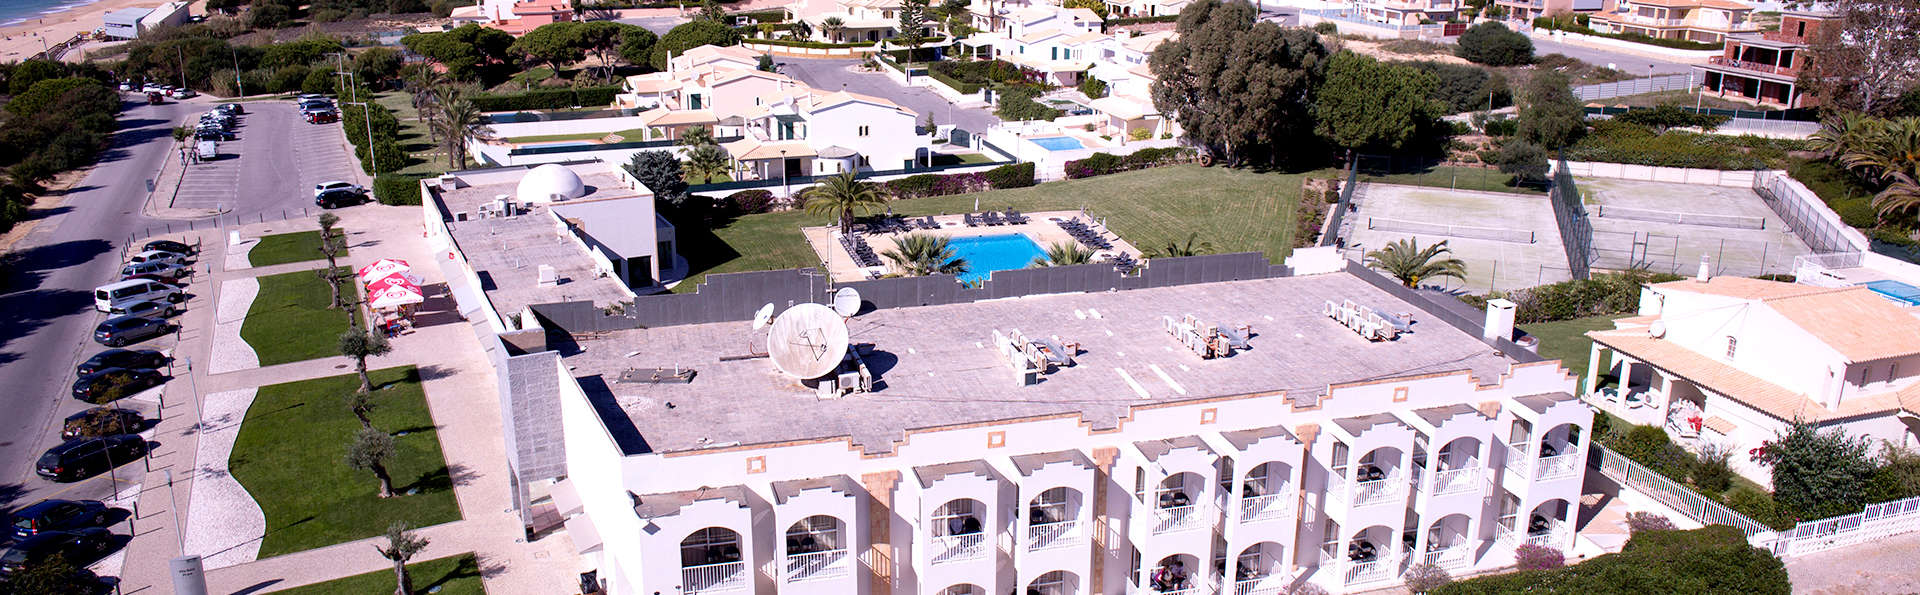 Hotel Vila Galé Praia (Adults Only) - Edit_Front.jpg